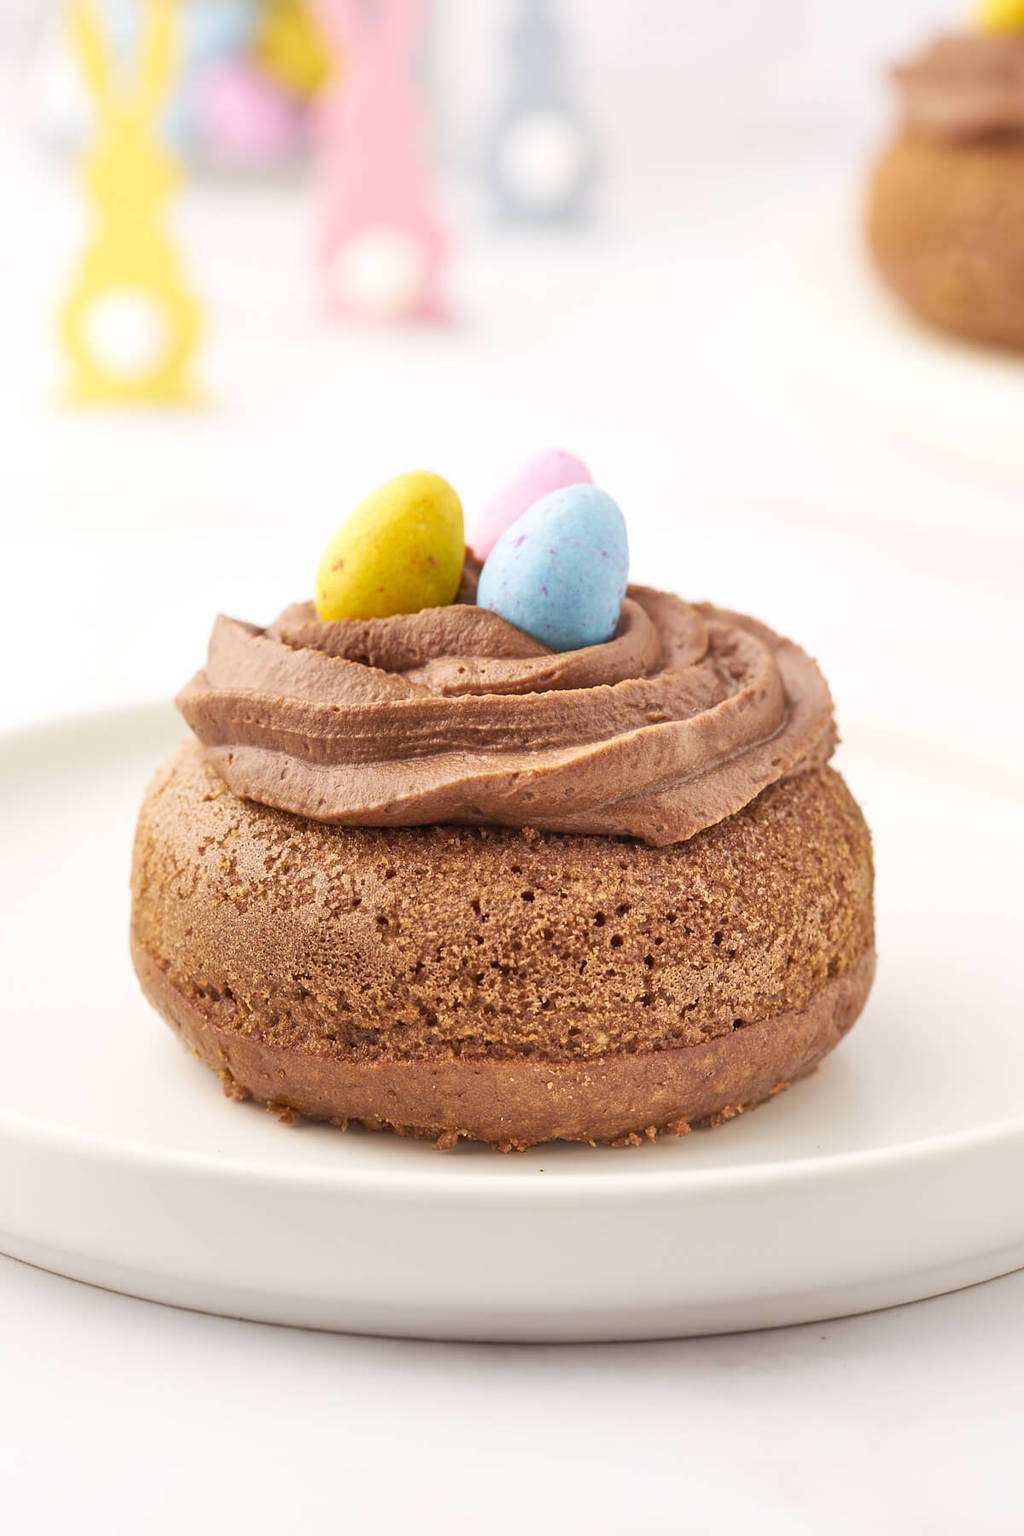 A Chocolate baked donut decorated as an Easter Nest filled with Mini Eggs in an Easter table setting.